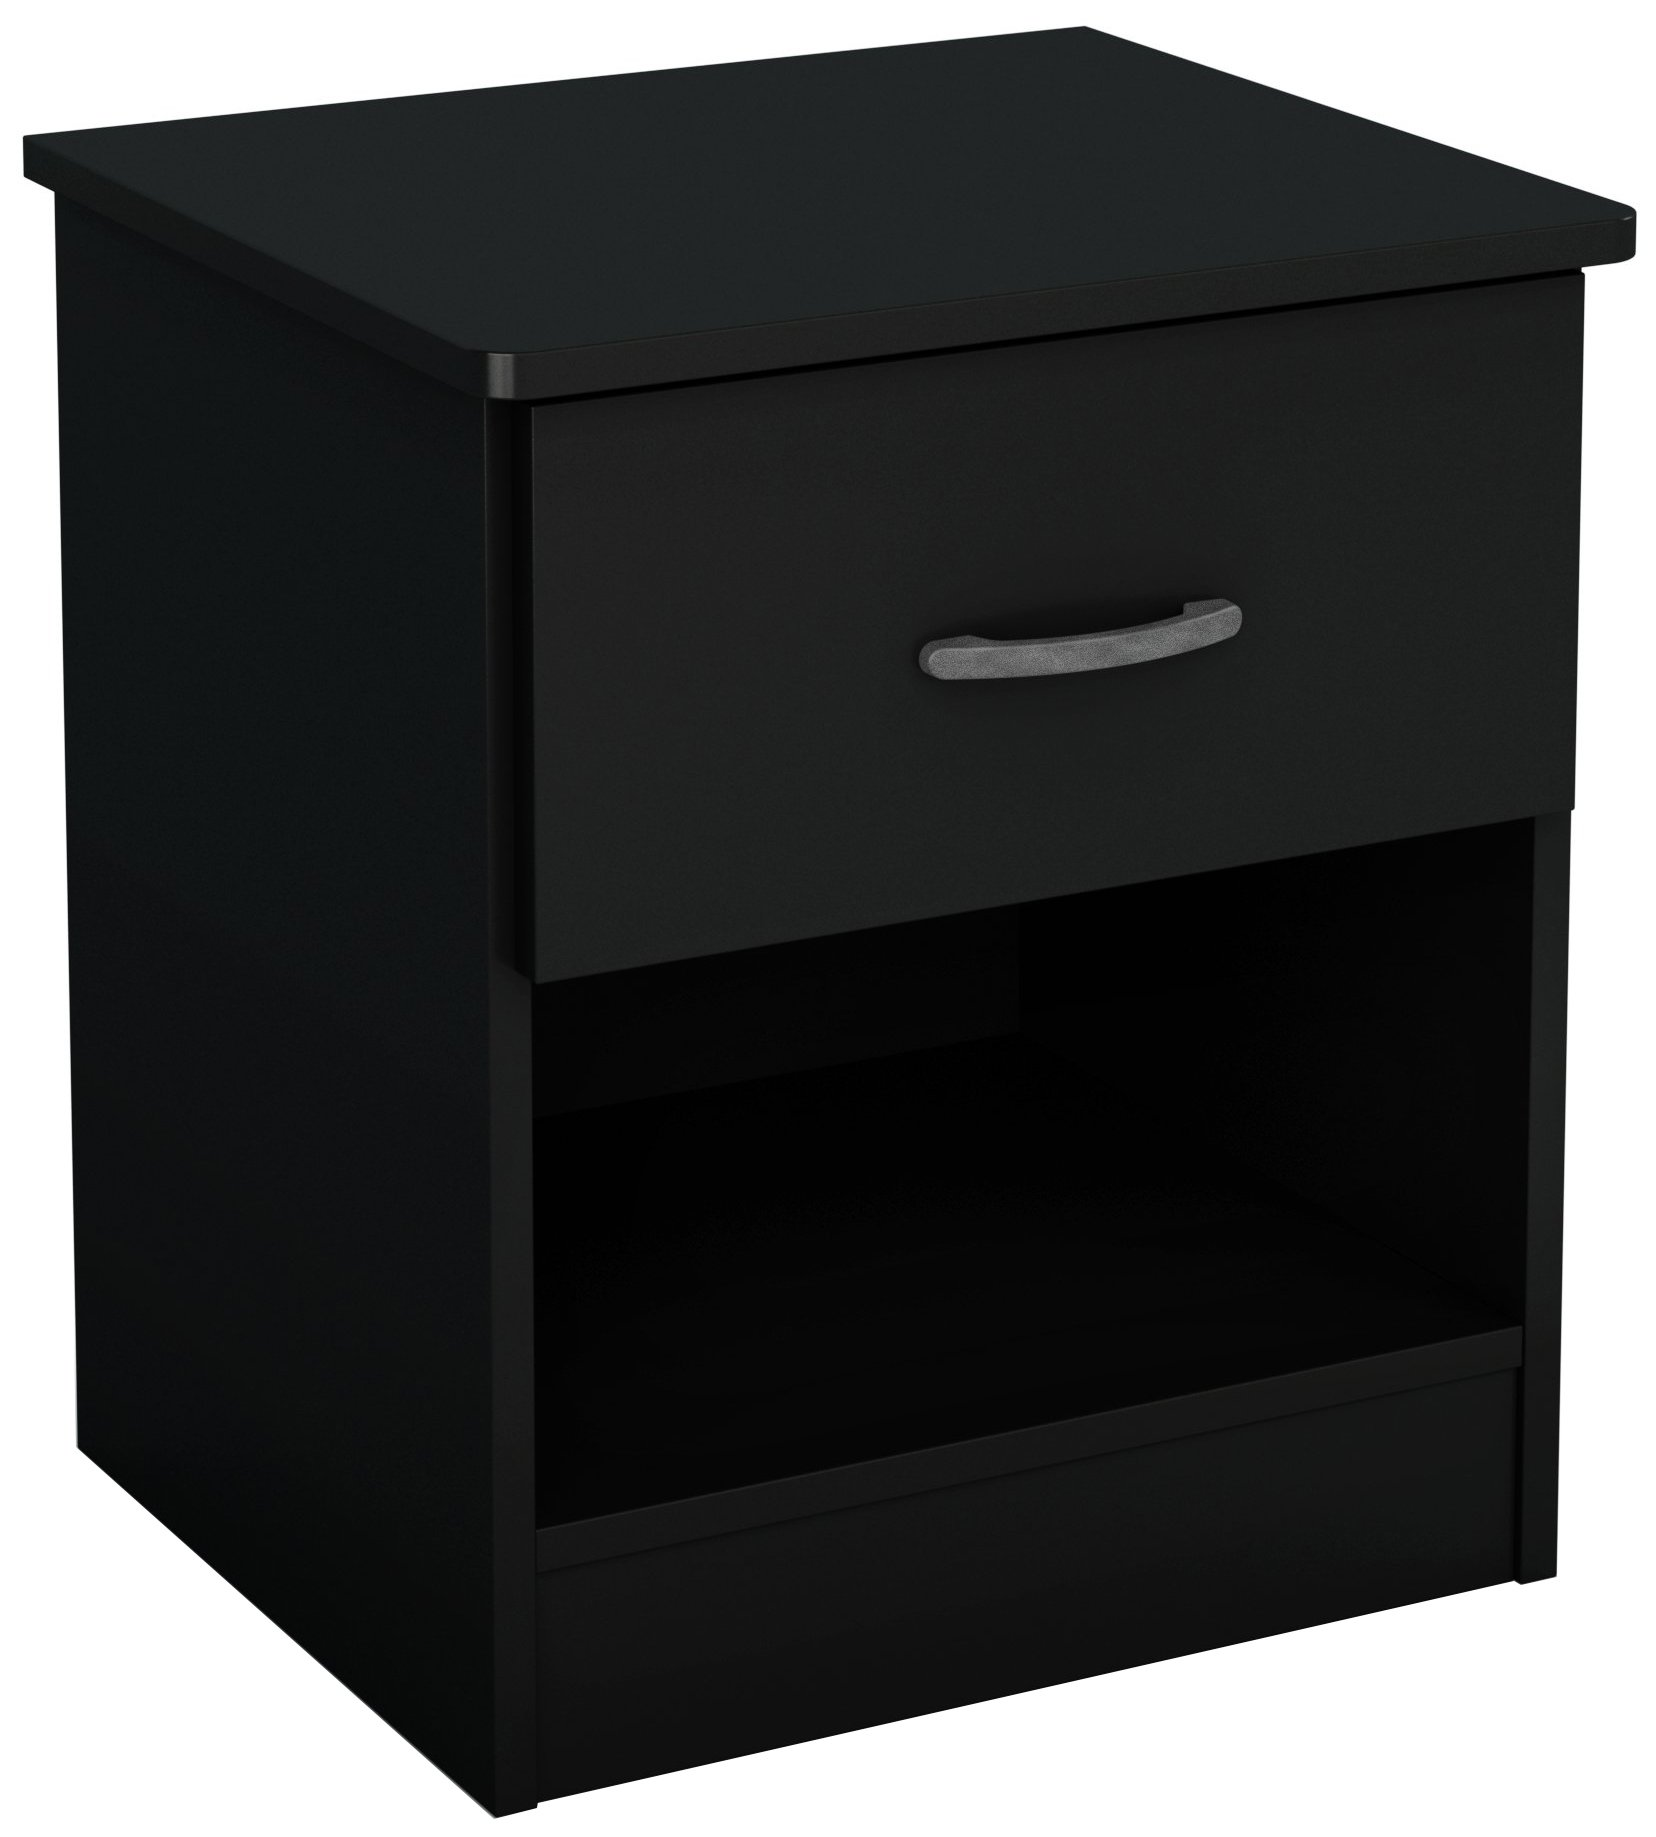 South Shore Libra 1-Drawer Nightstand, Pure Black with Metal Handle by South Shore